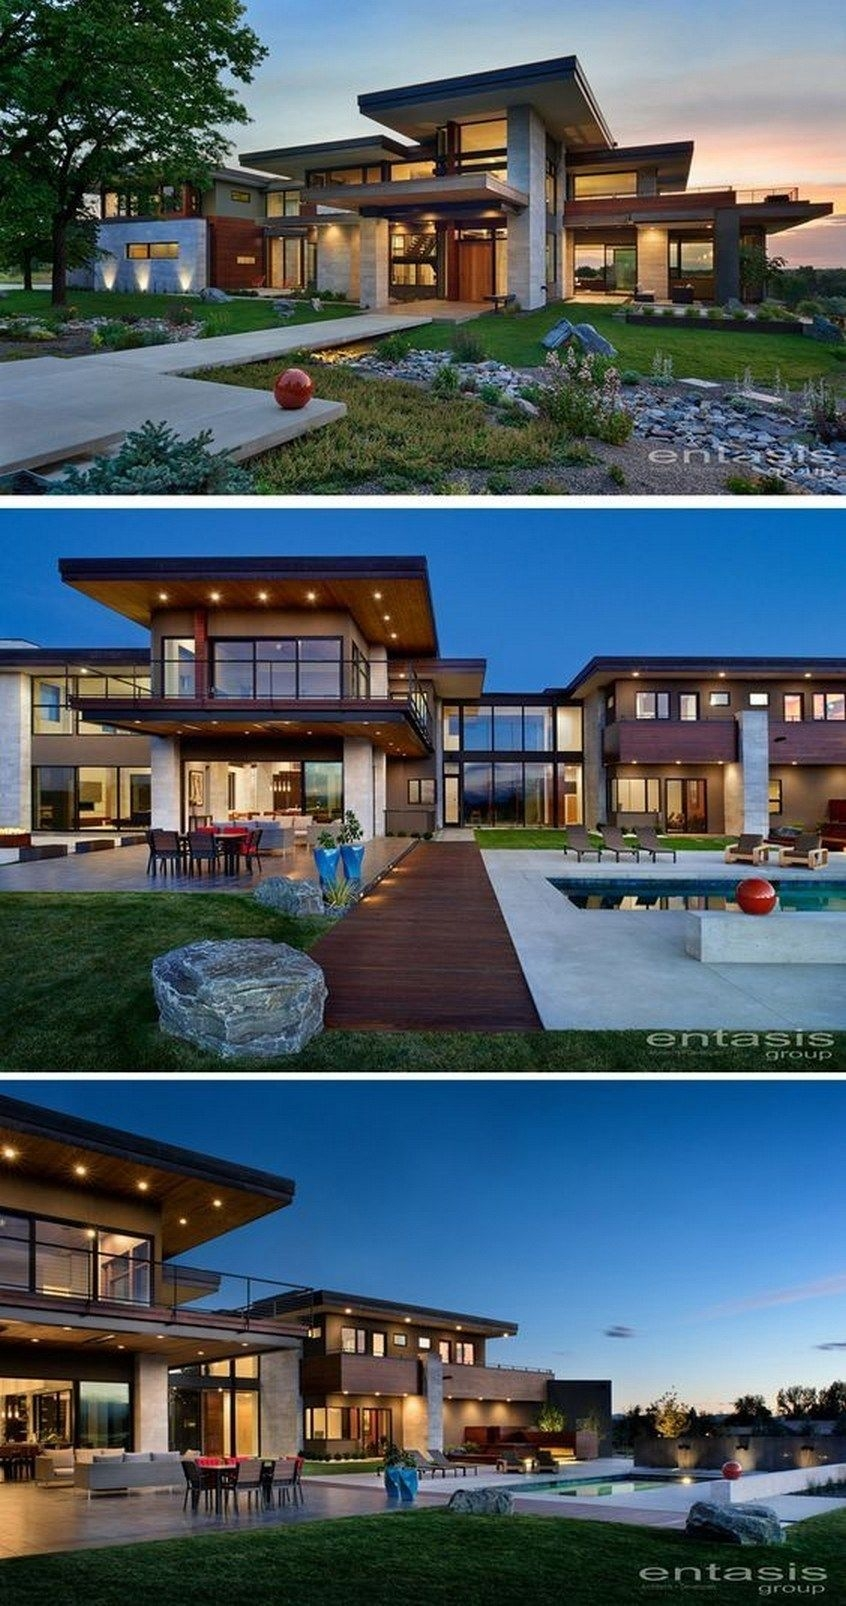 f4f45a0928dc38bd3e dac4aa on Modern House Designs Pictures Gallery id=1005769